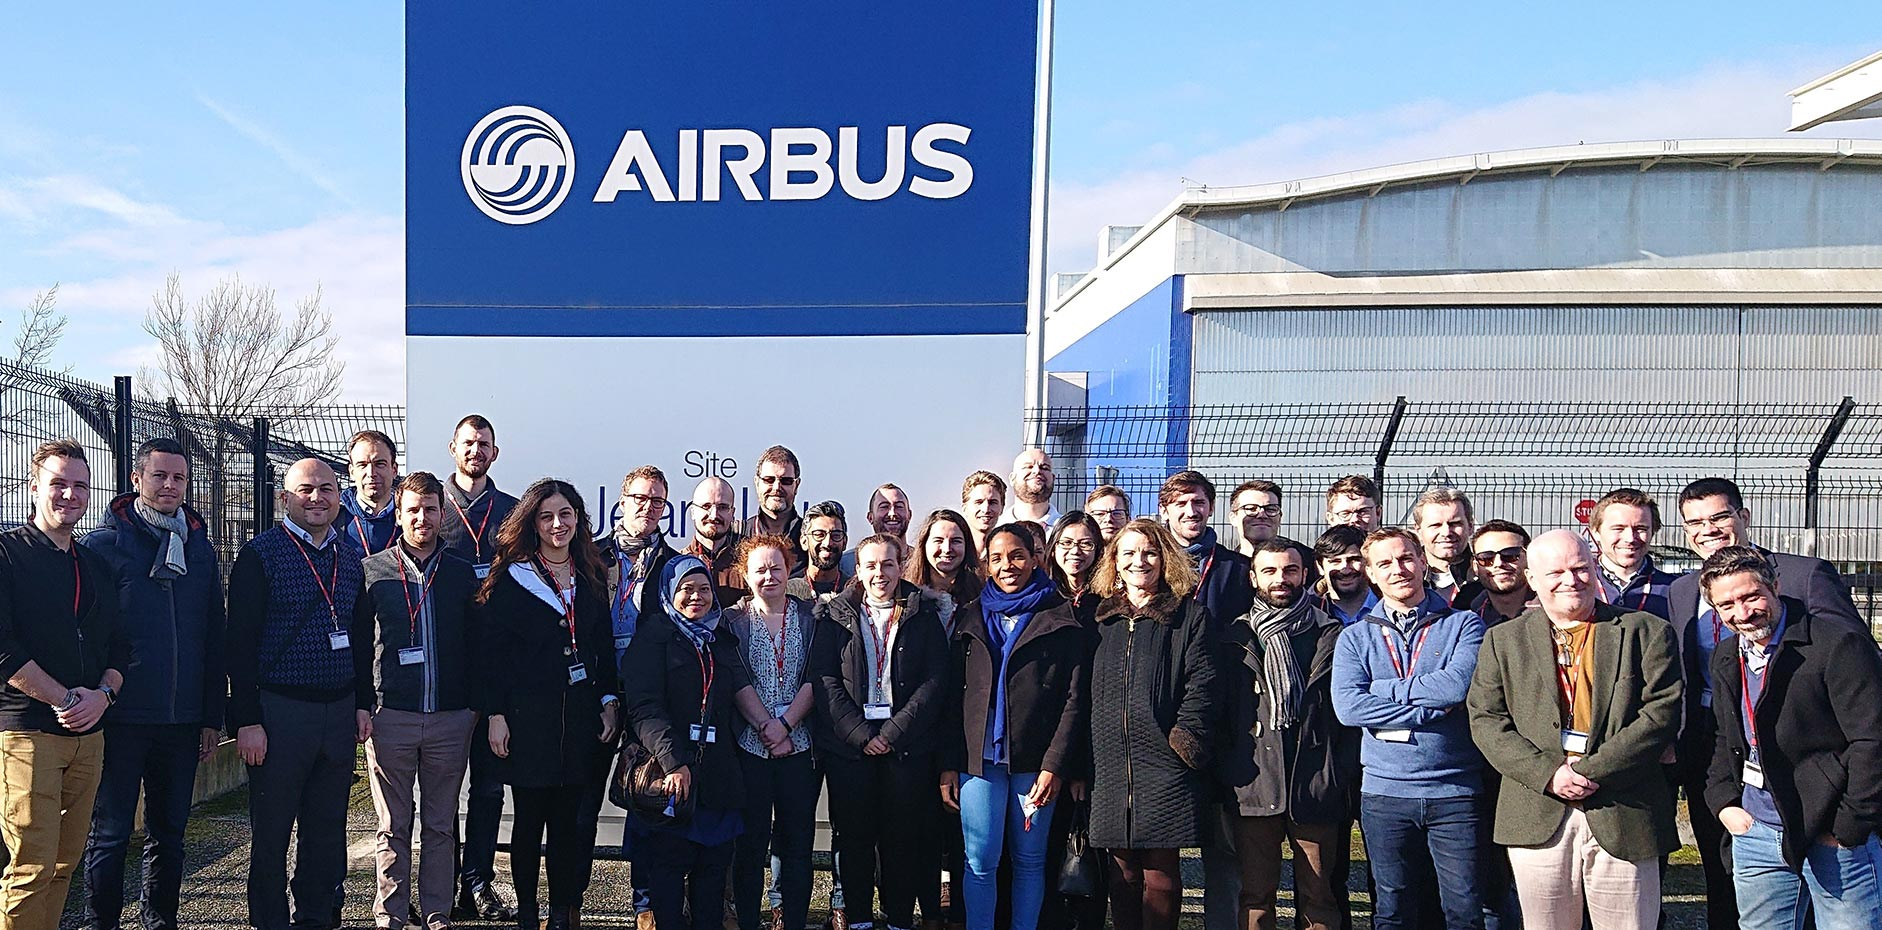 CAST User Conference at Airbus